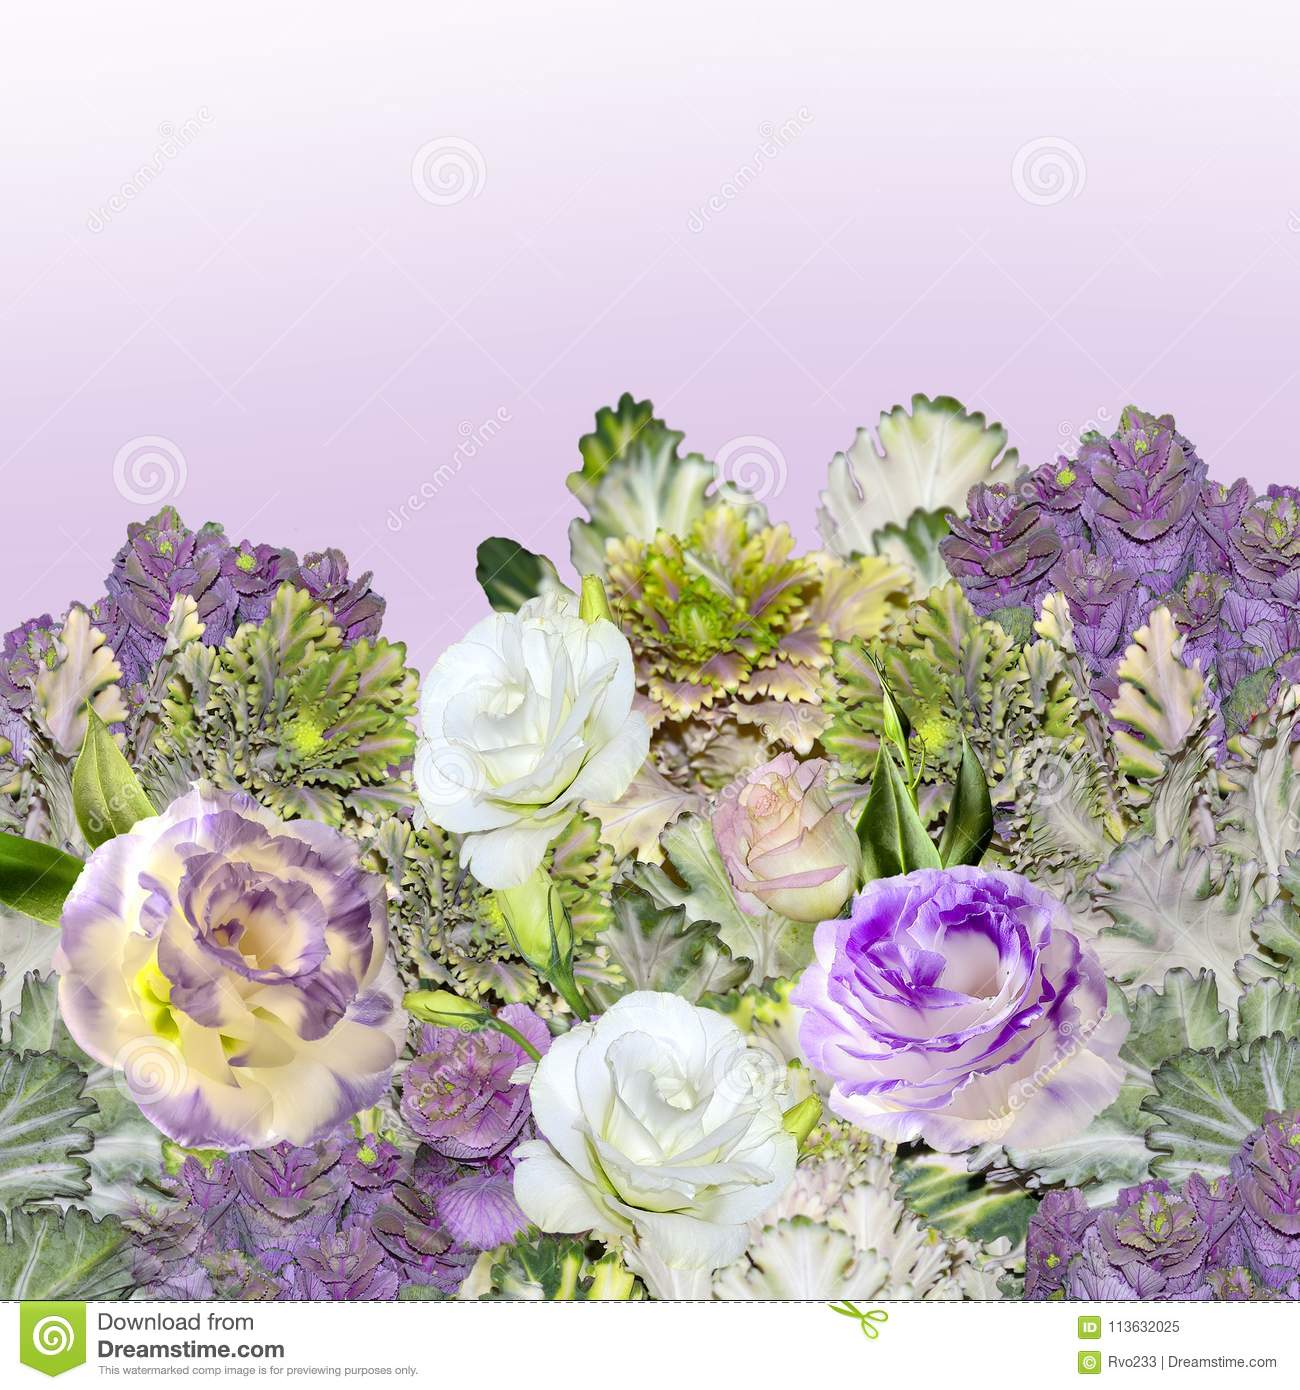 Bouquet Of Eustoma Lisianthus Flowers And Ornamental Cabbage Stock